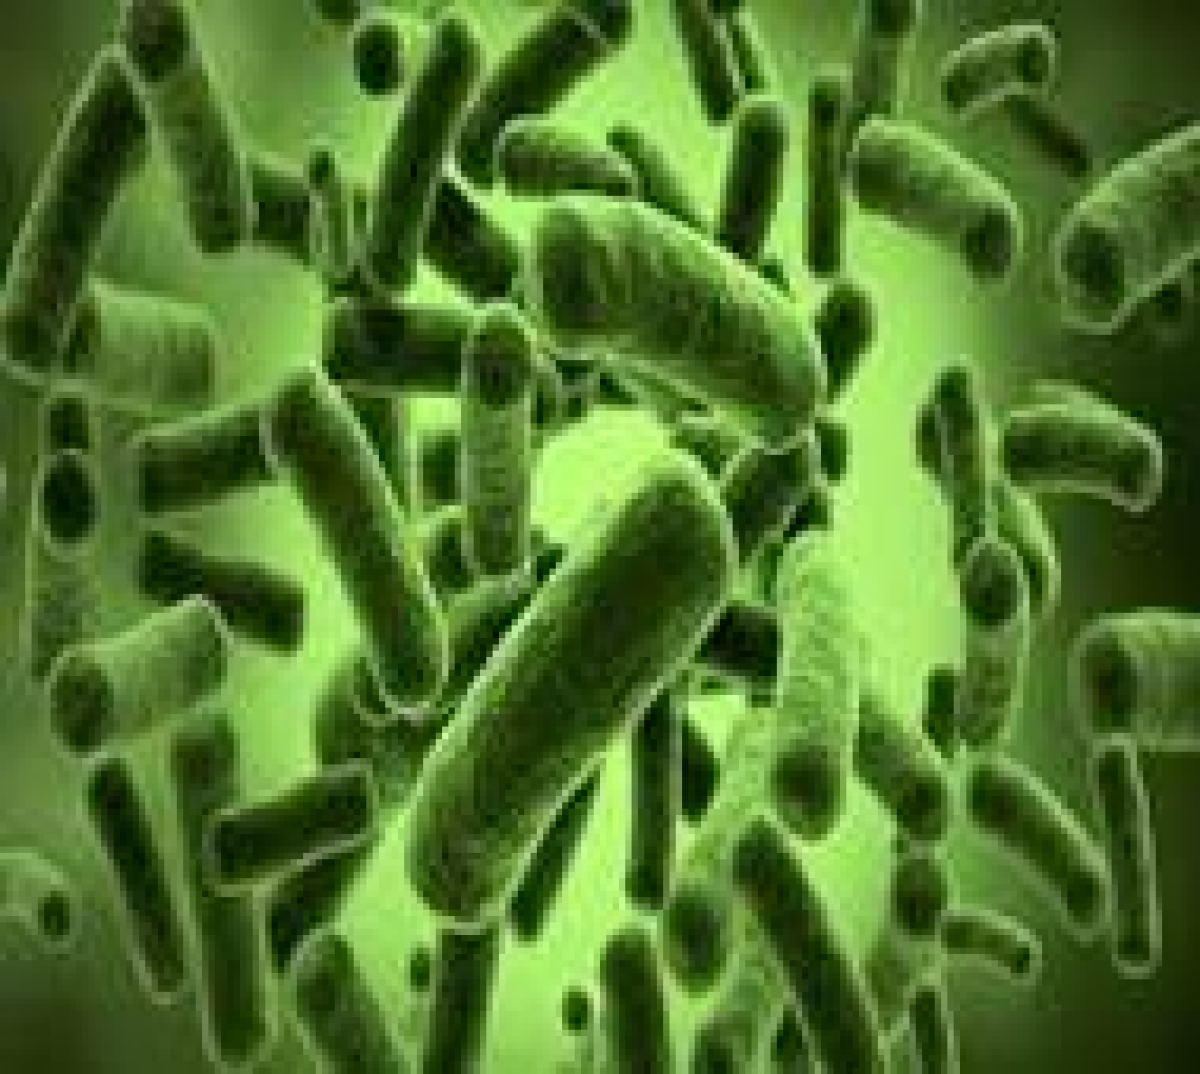 'Good' gut bacteria can help prevent cancer